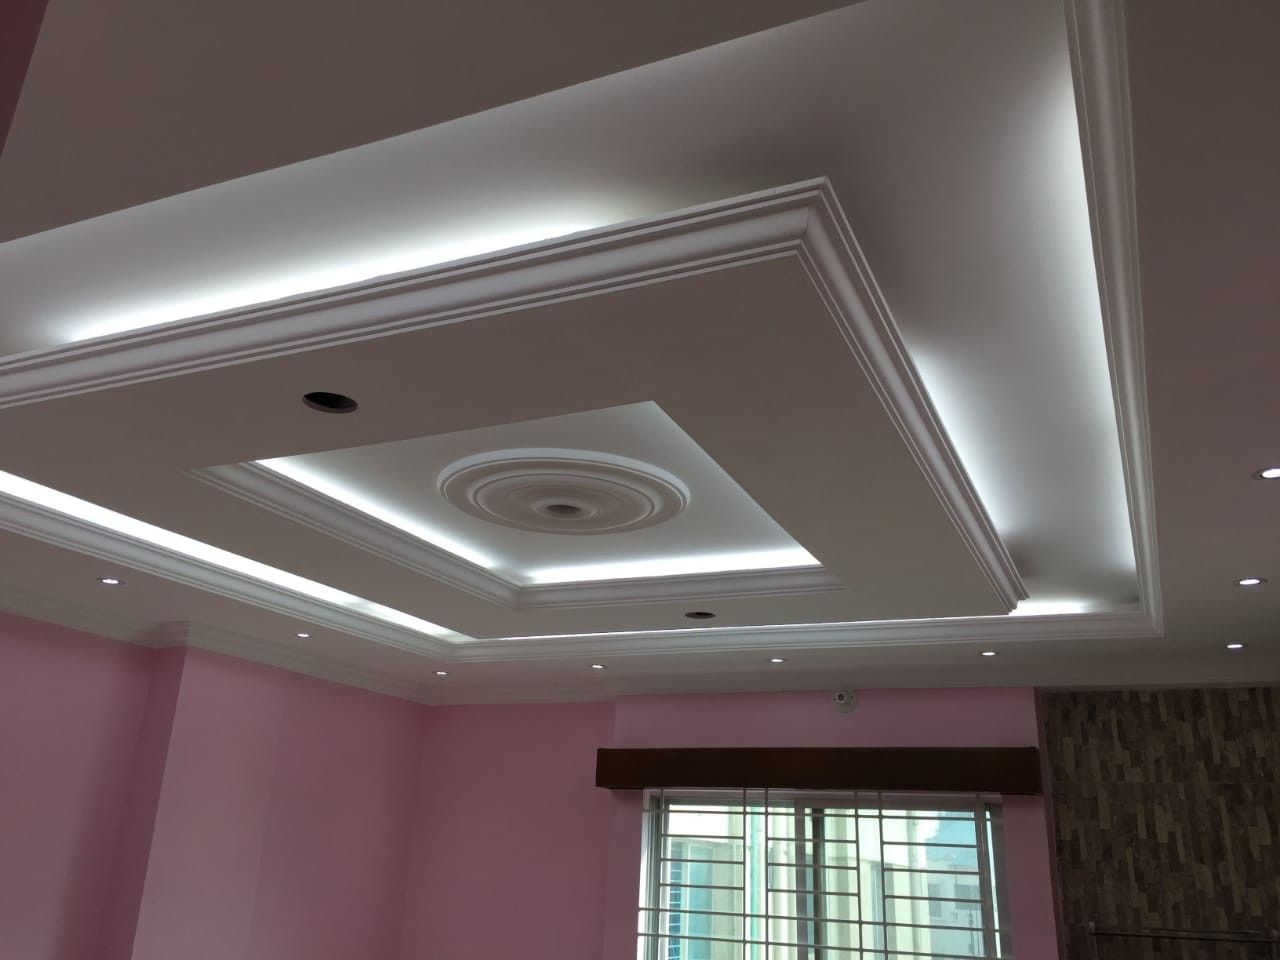 Placoplatre Decoration Plafond Pin By Lahoucine Oujoul On Décoration Plâtre 1er Etage In 2019